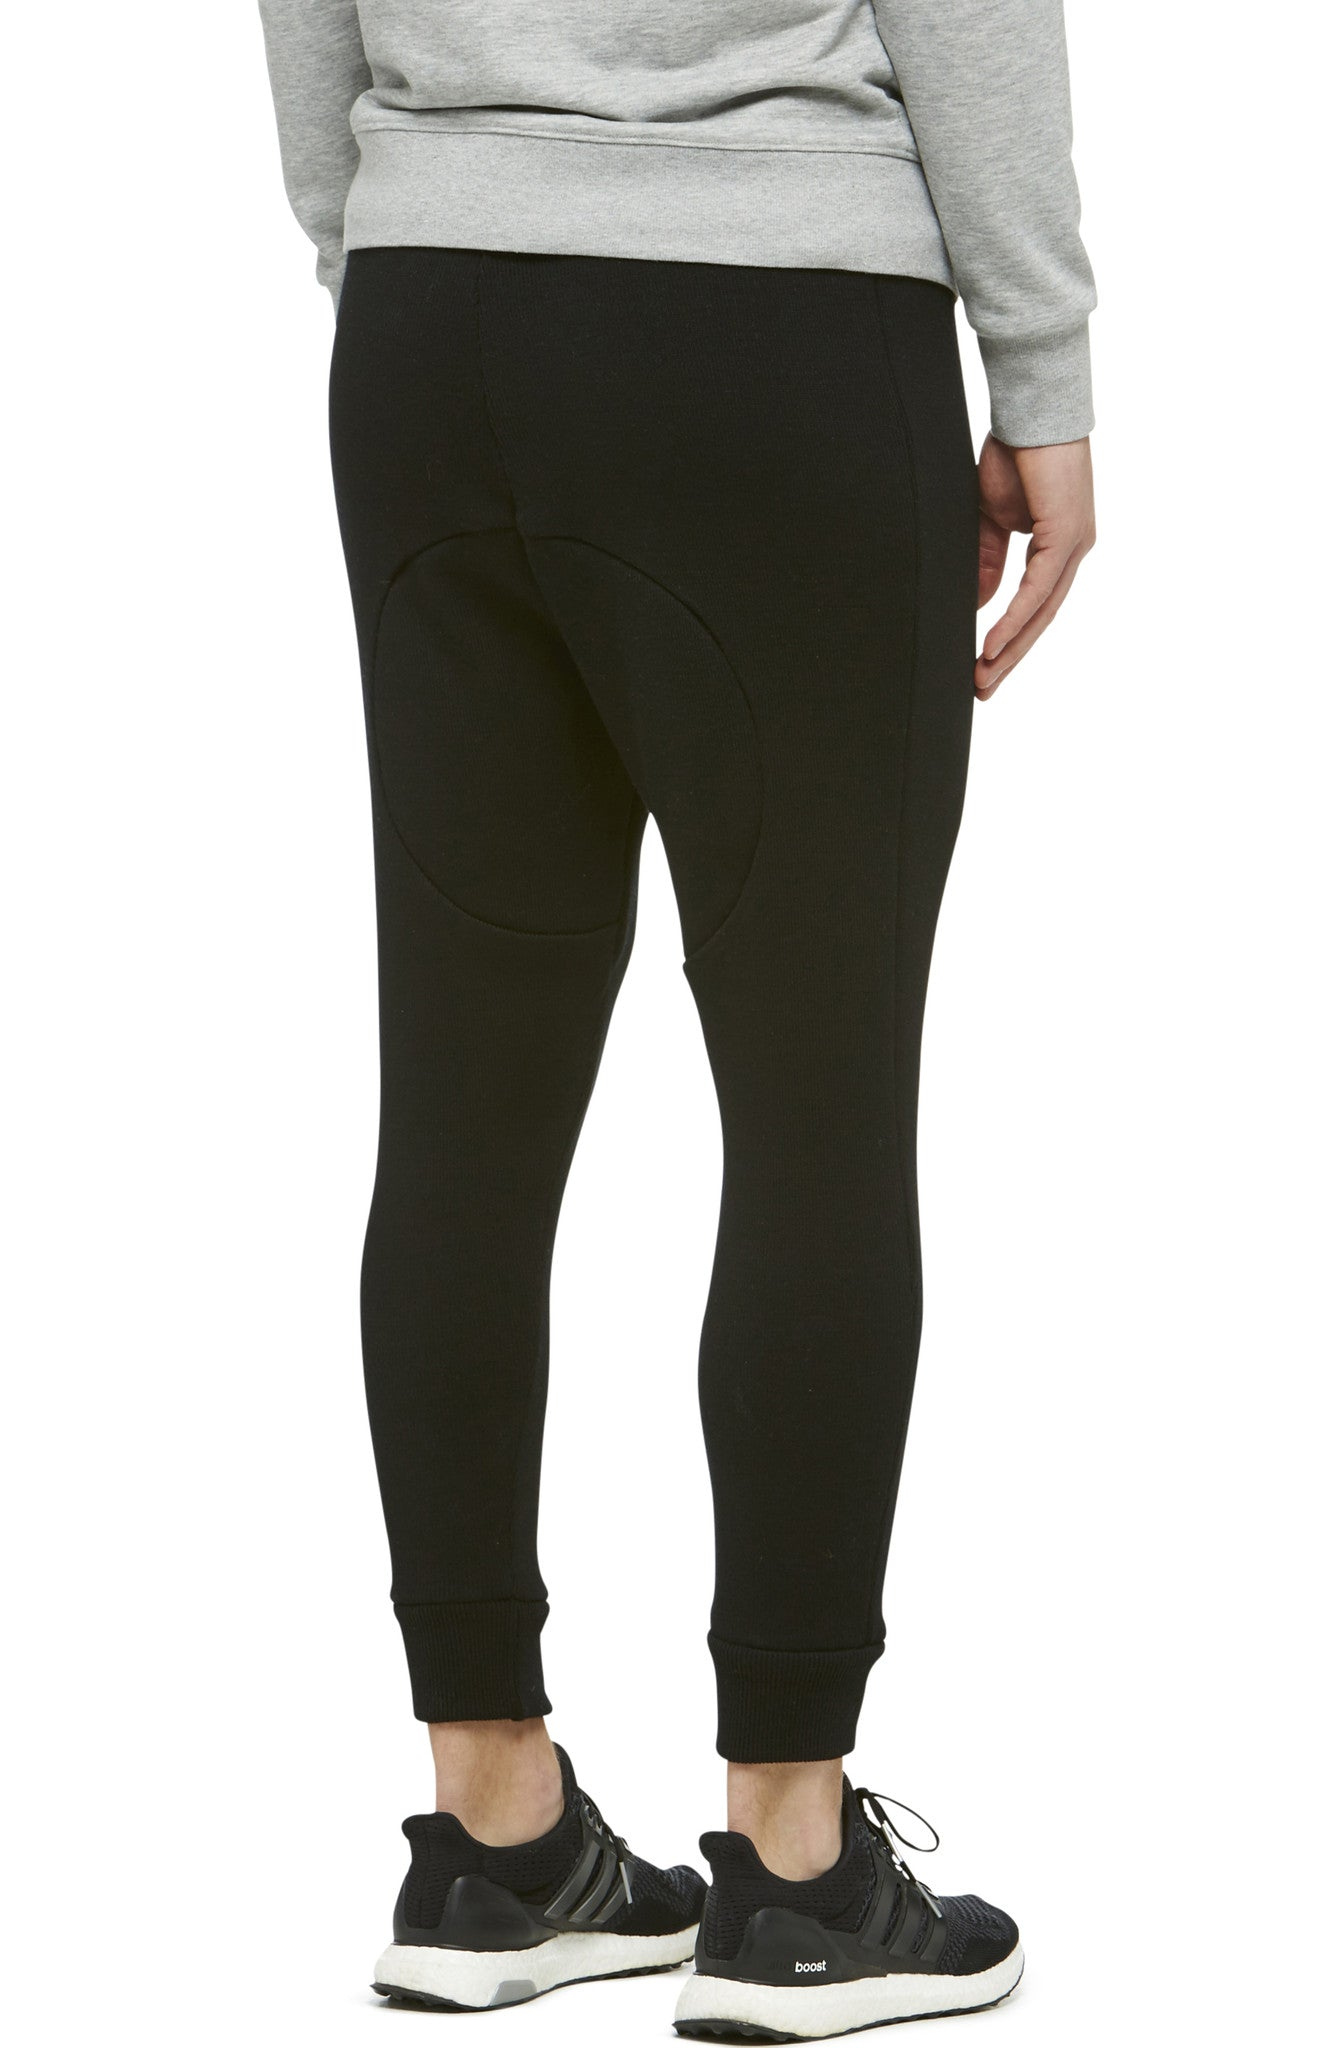 Black Merino Knit Long Johns